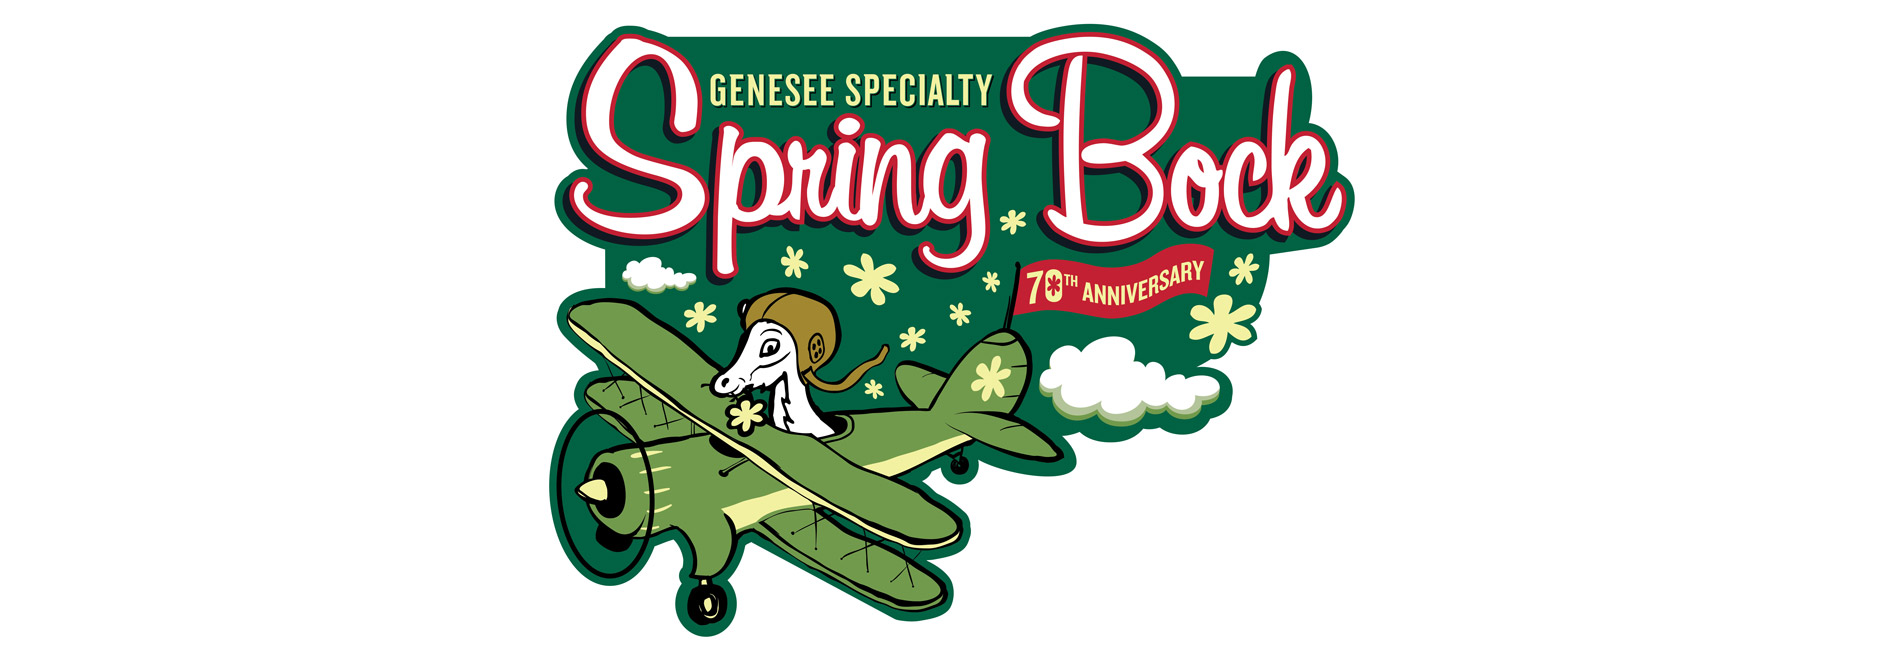 70th Anniversary of Genesee Specialty Spring Bock logo featuring the Spring Bock goat flying an airplane